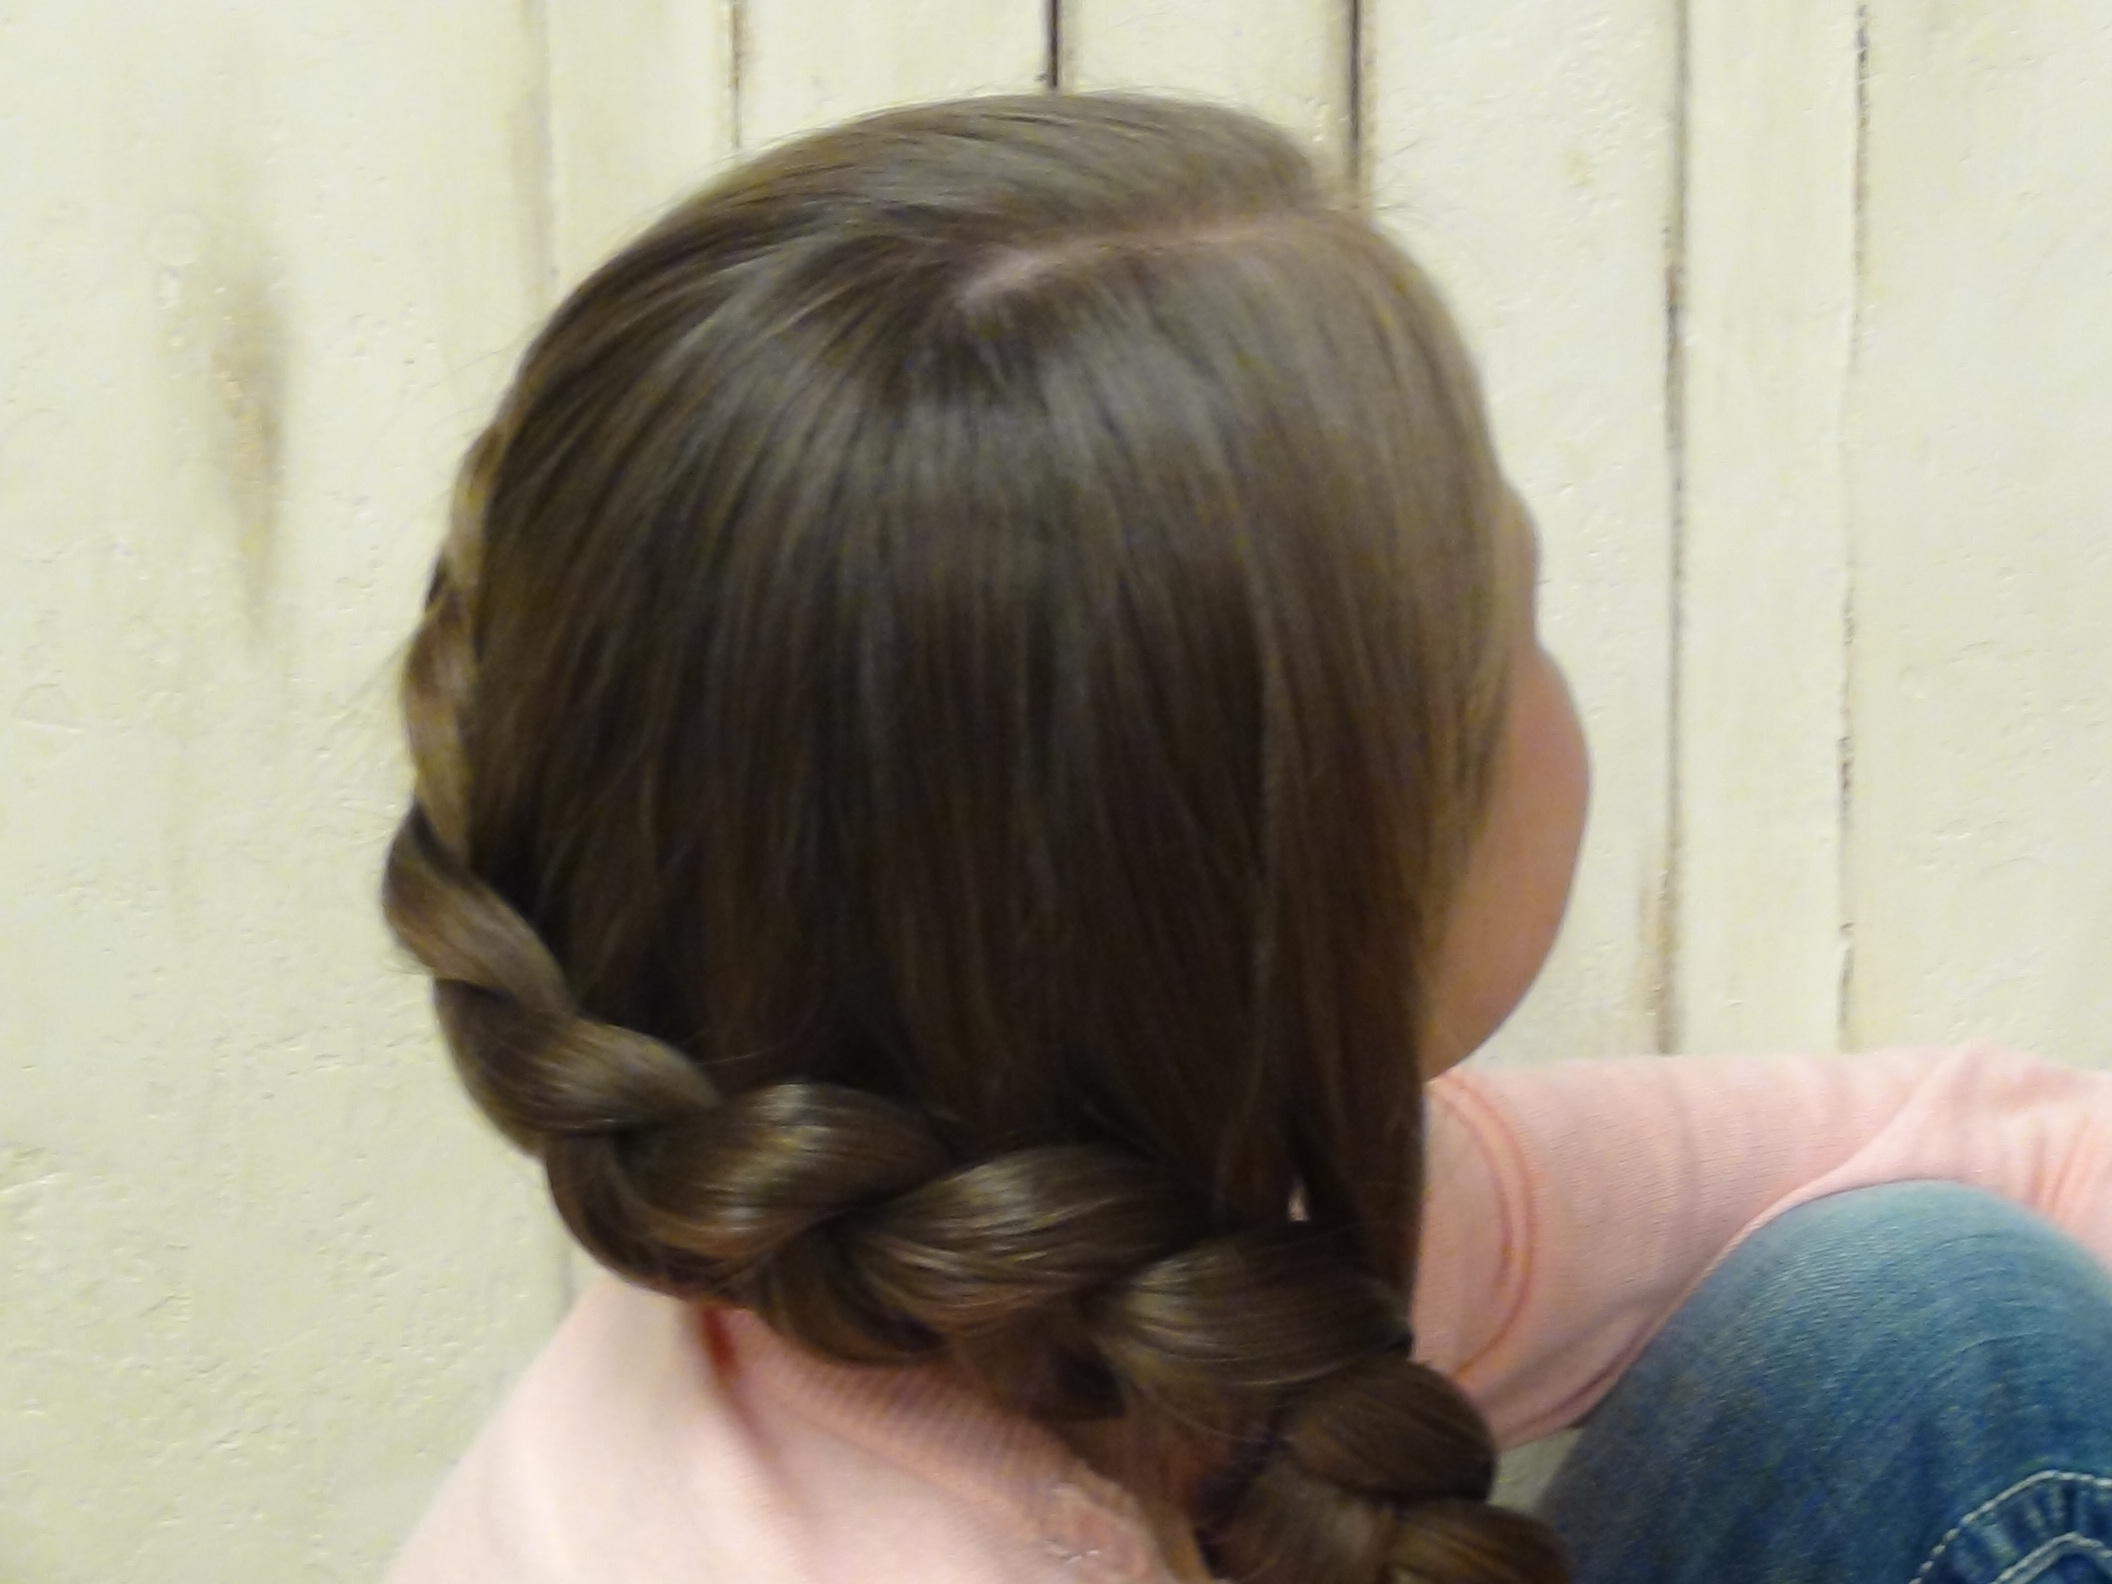 katy perry hairstyle : Katniss Everdeen Braid From The Hunger Game Movie Boys and Girls ...